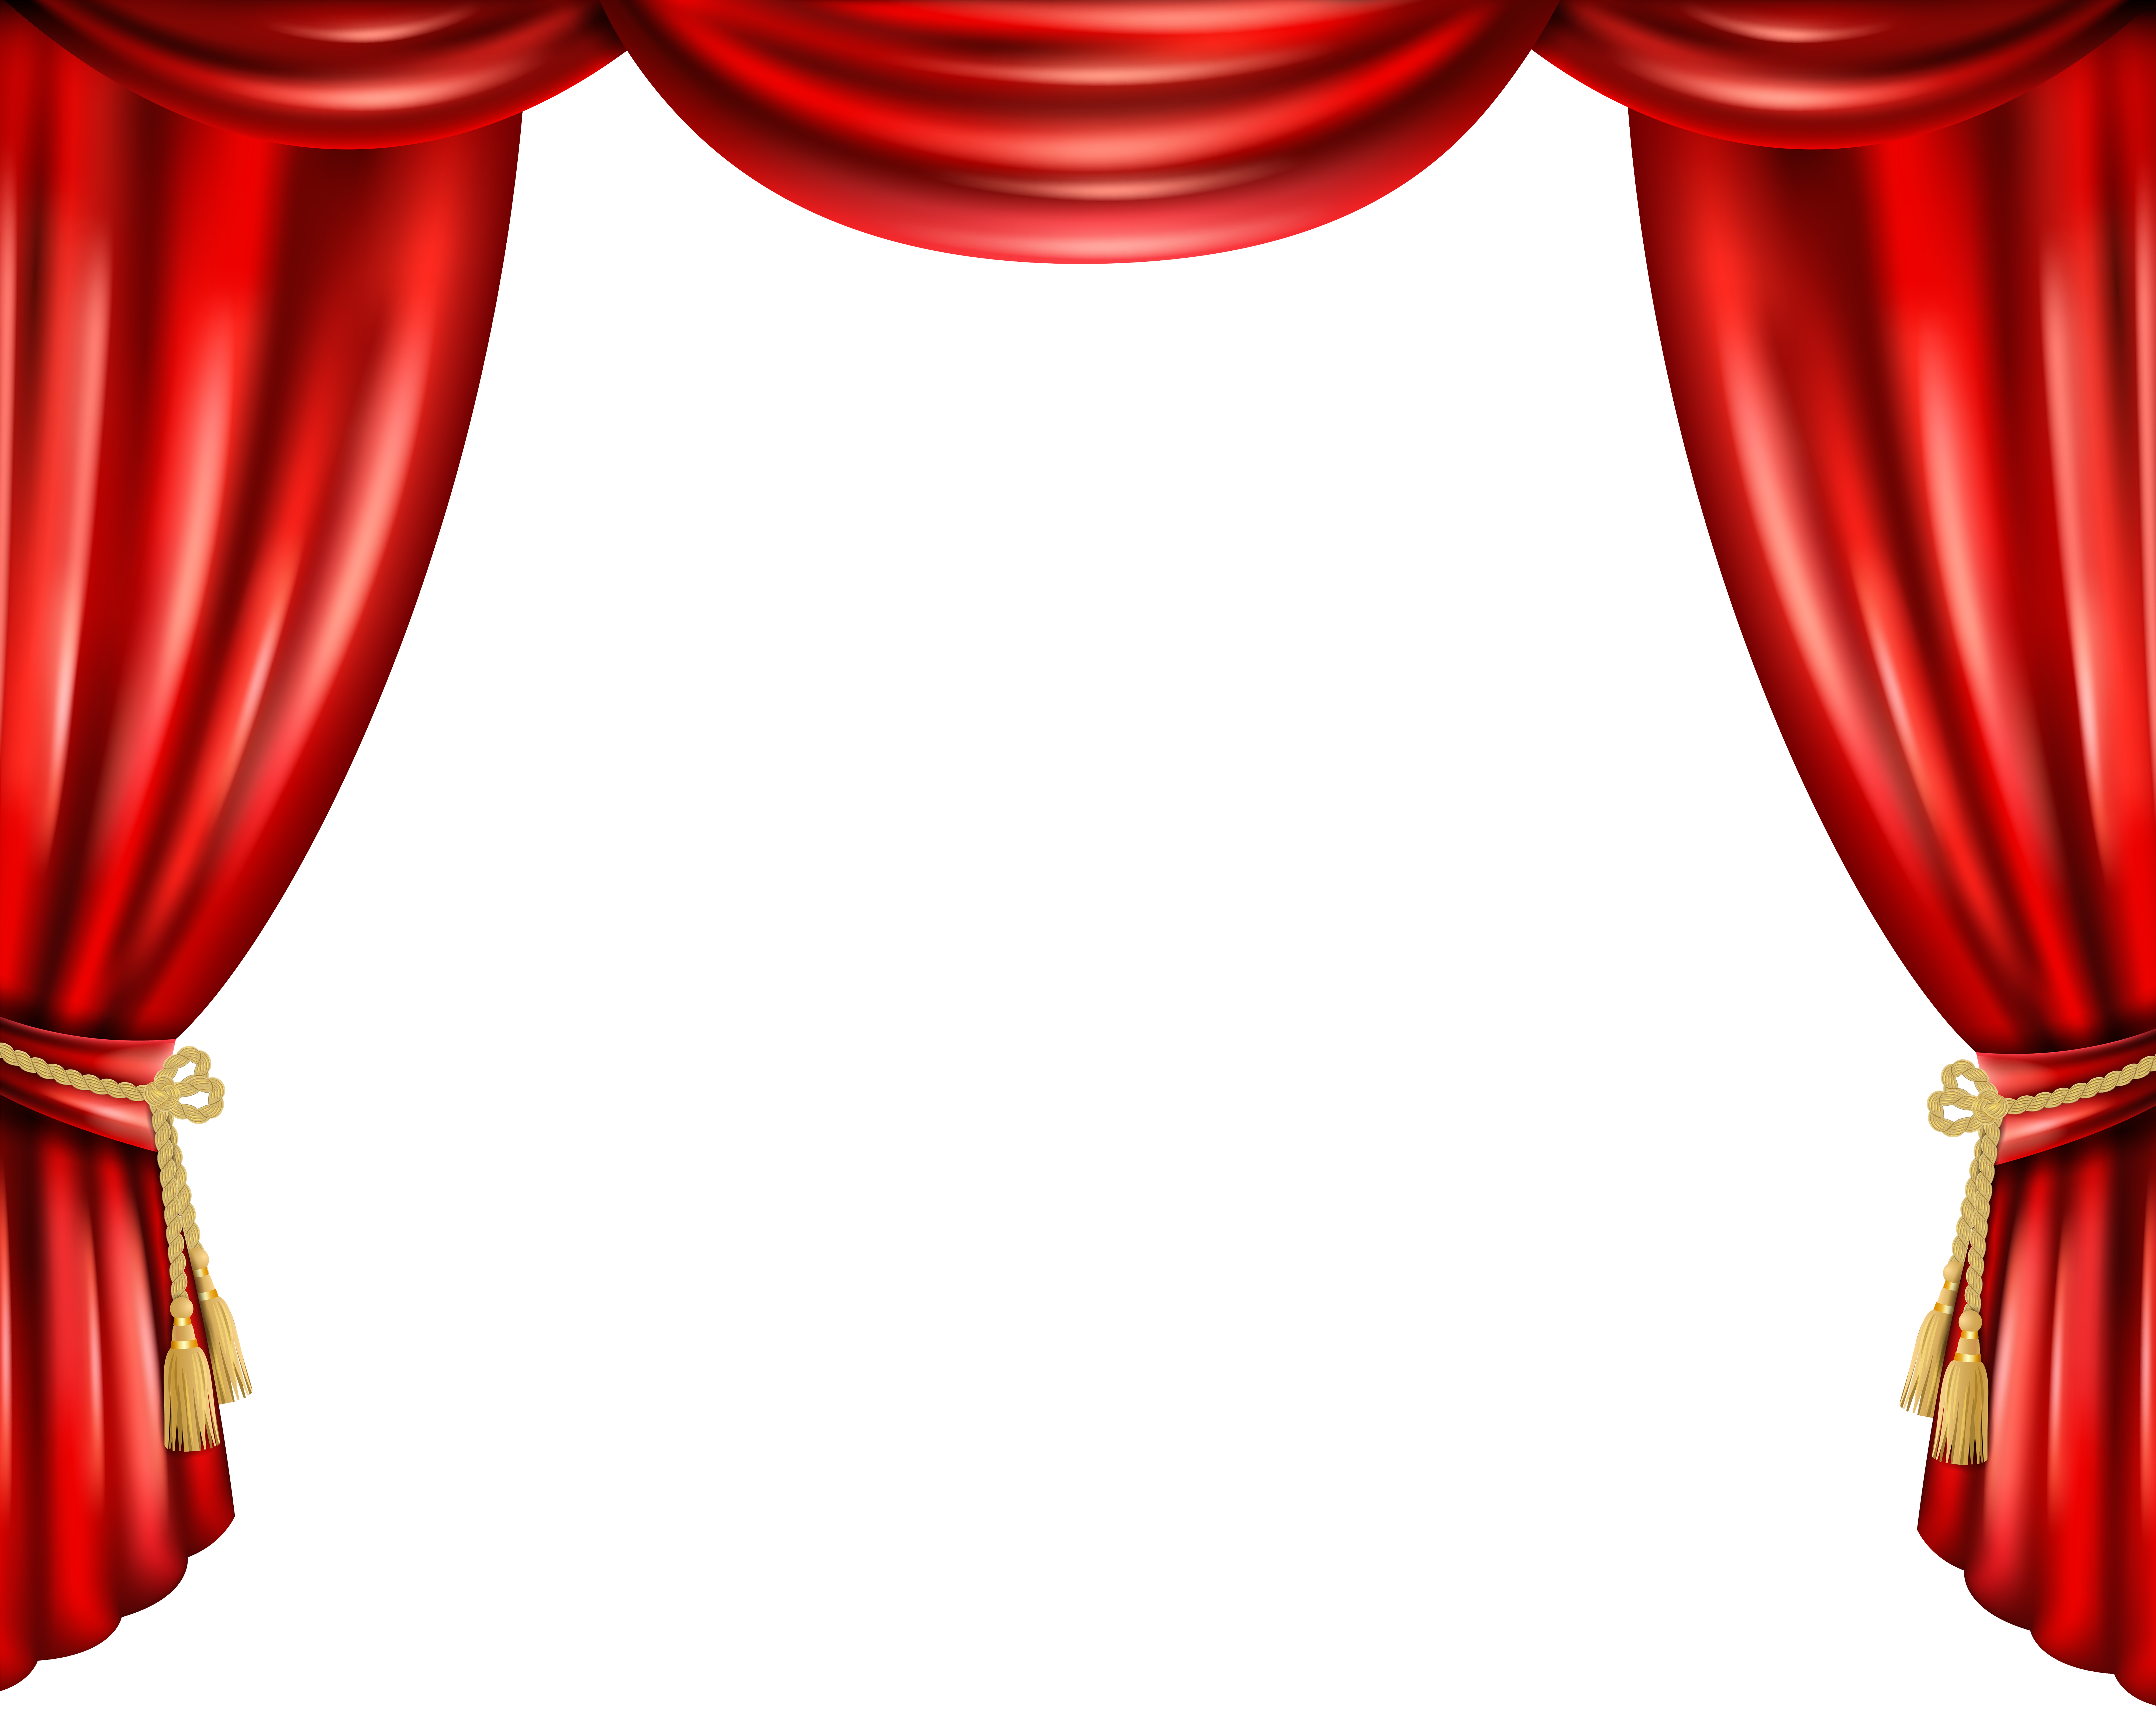 Red Curtain PNG Transparent Clip Art Image.